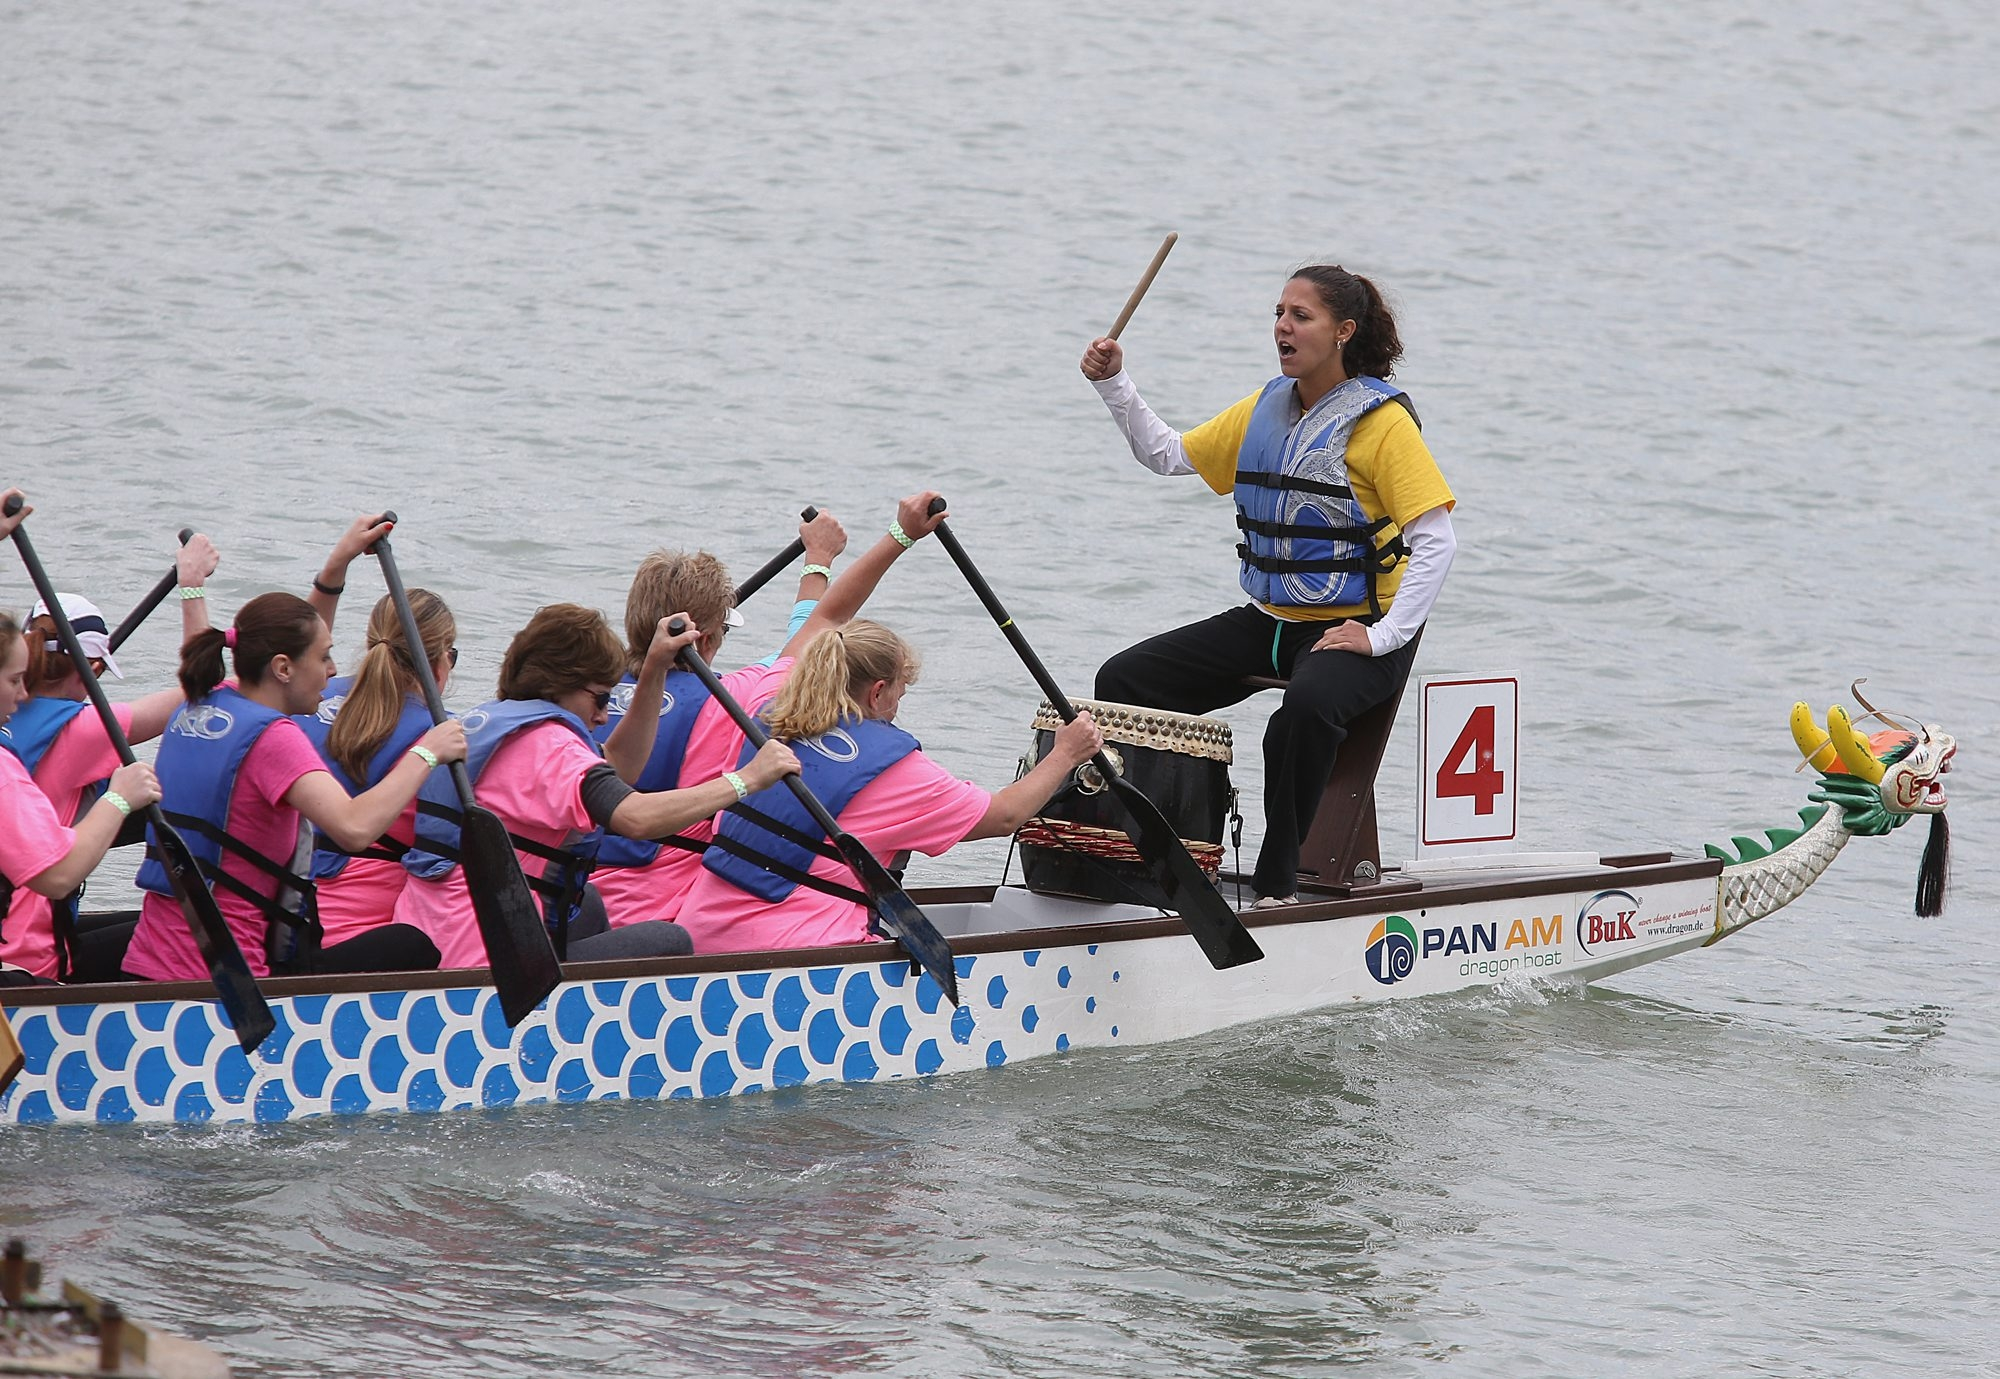 A dragon boat drummer motivates her crew Saturday while racing on Lake LaSalle on the University at Buffalo's North Campus in Amherst during the Hope Chest Buffalo Niagara Dragon Boat Festival.